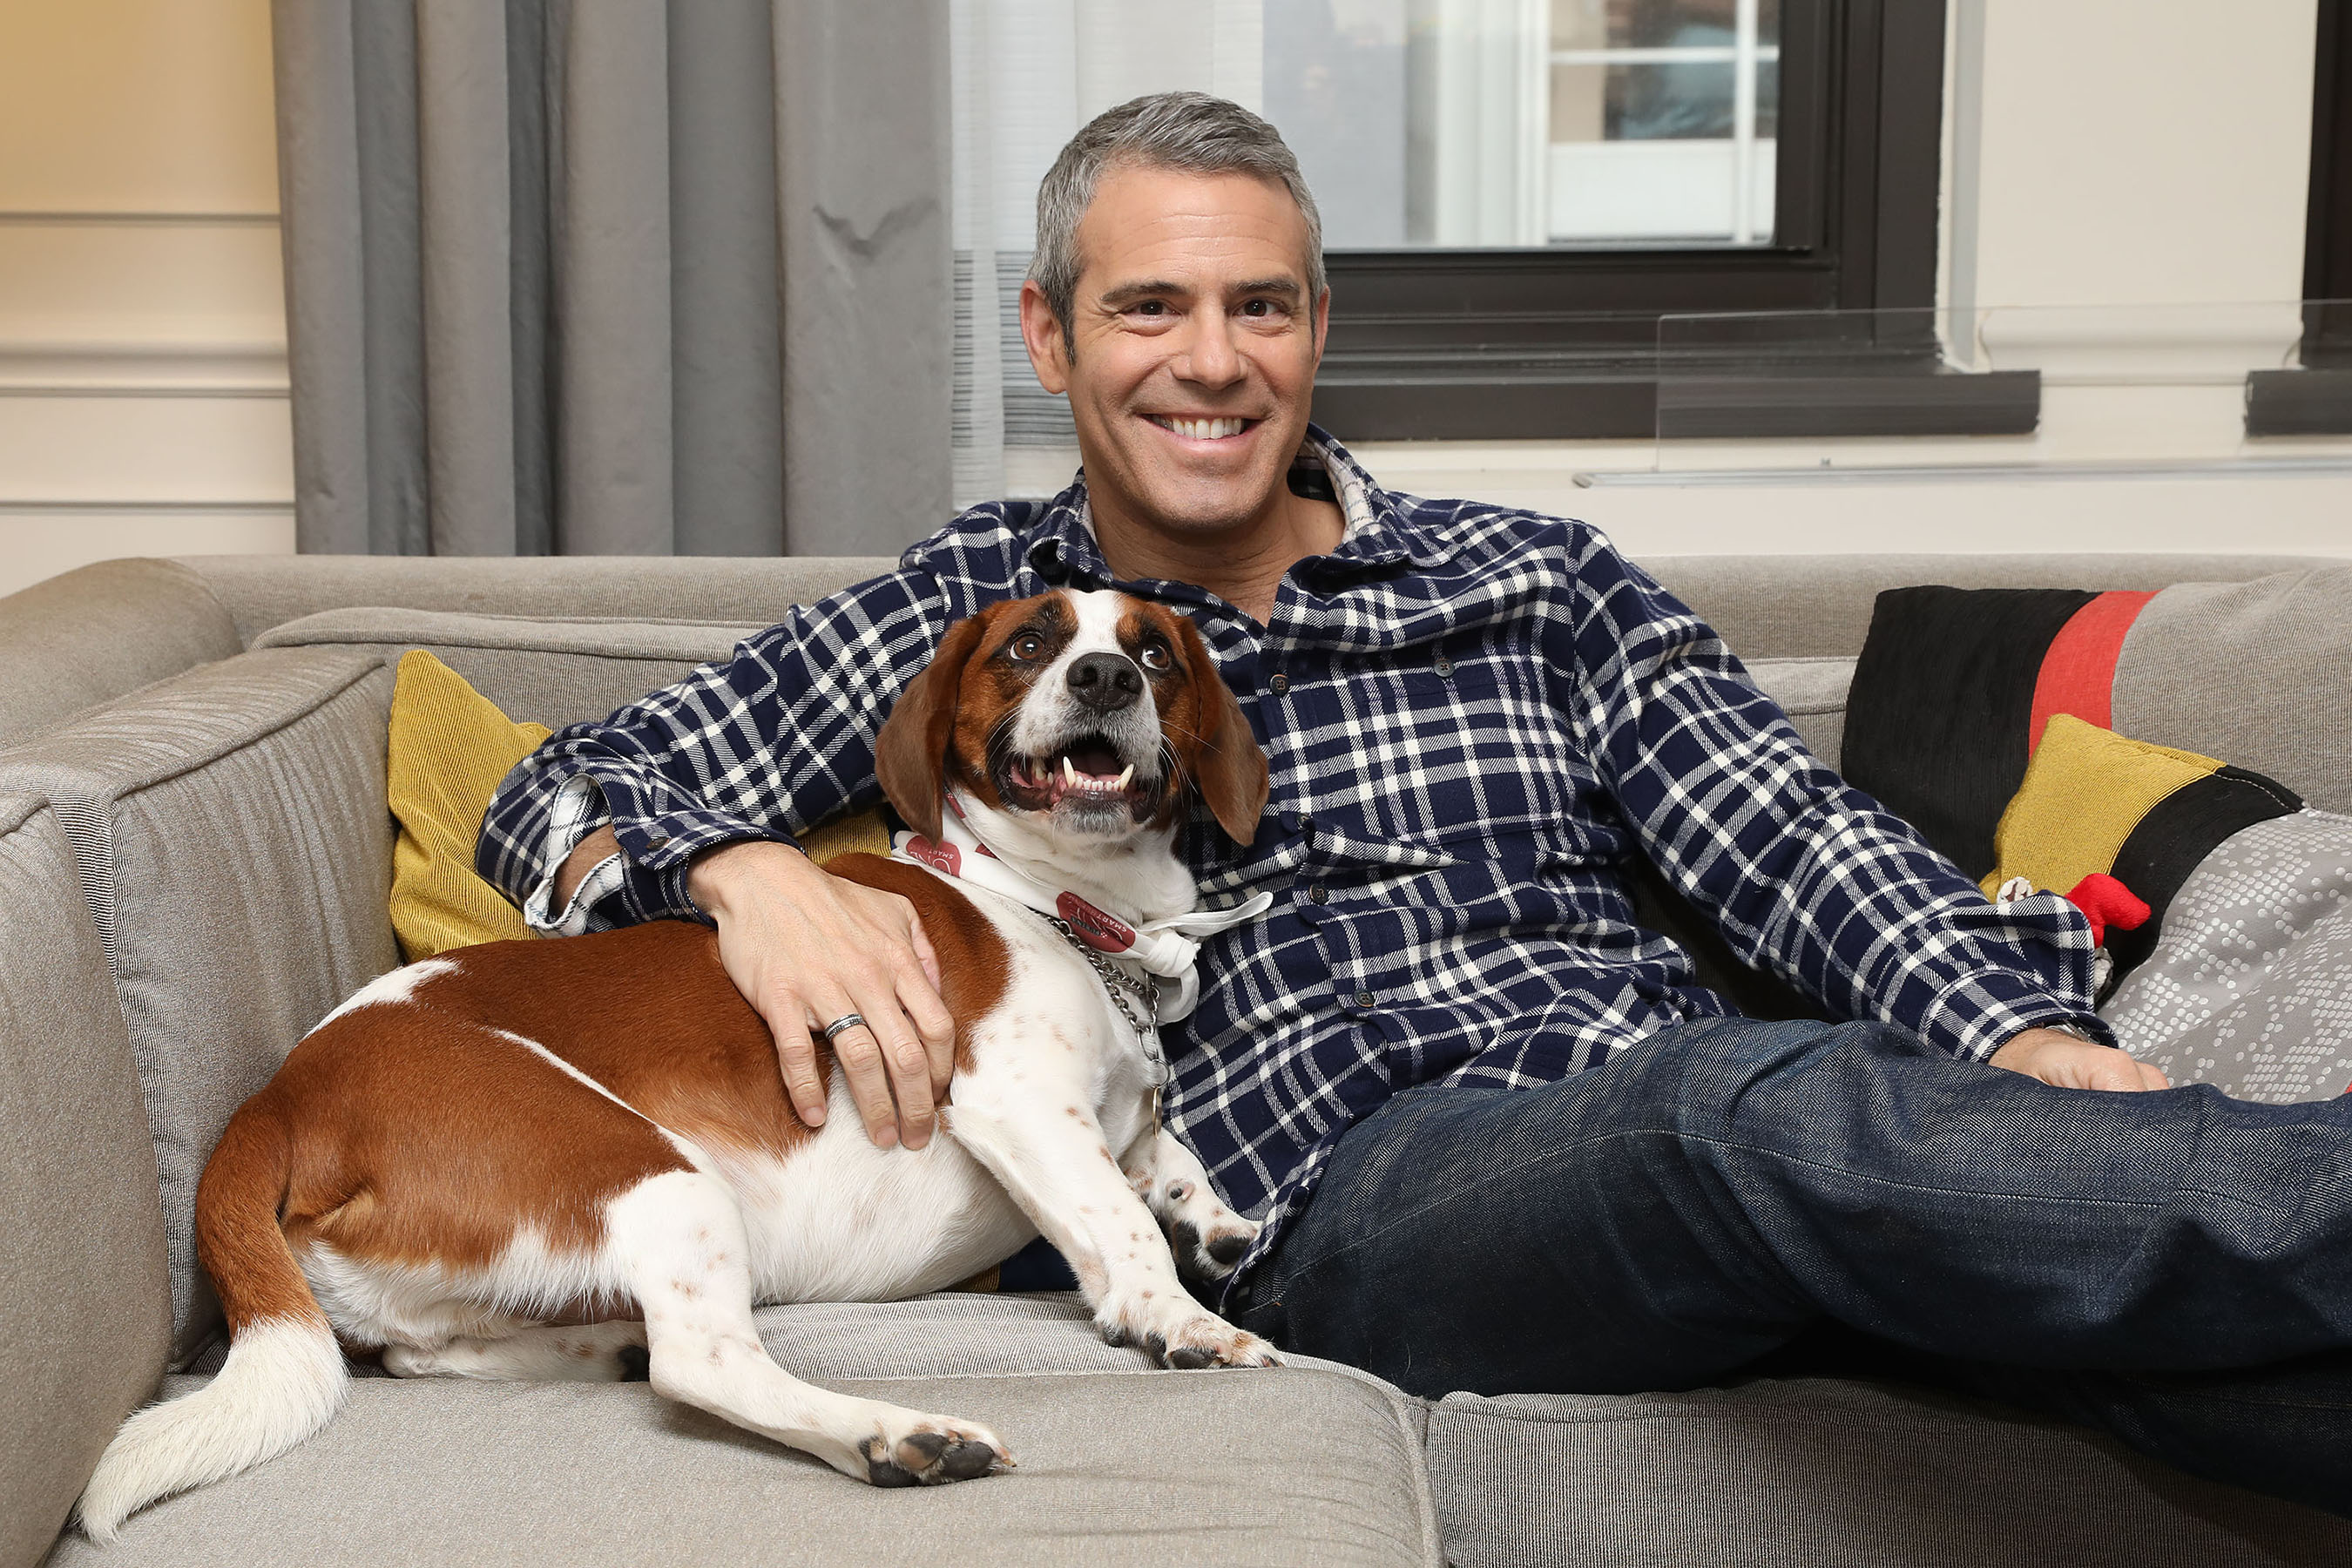 """Wacha is the best because he gives me cuddles and falls asleep on my leg,"" said Andy Cohen, Emmy Award-winning host and executive producer of ""Watch What Happens Live with Andy Cohen"""